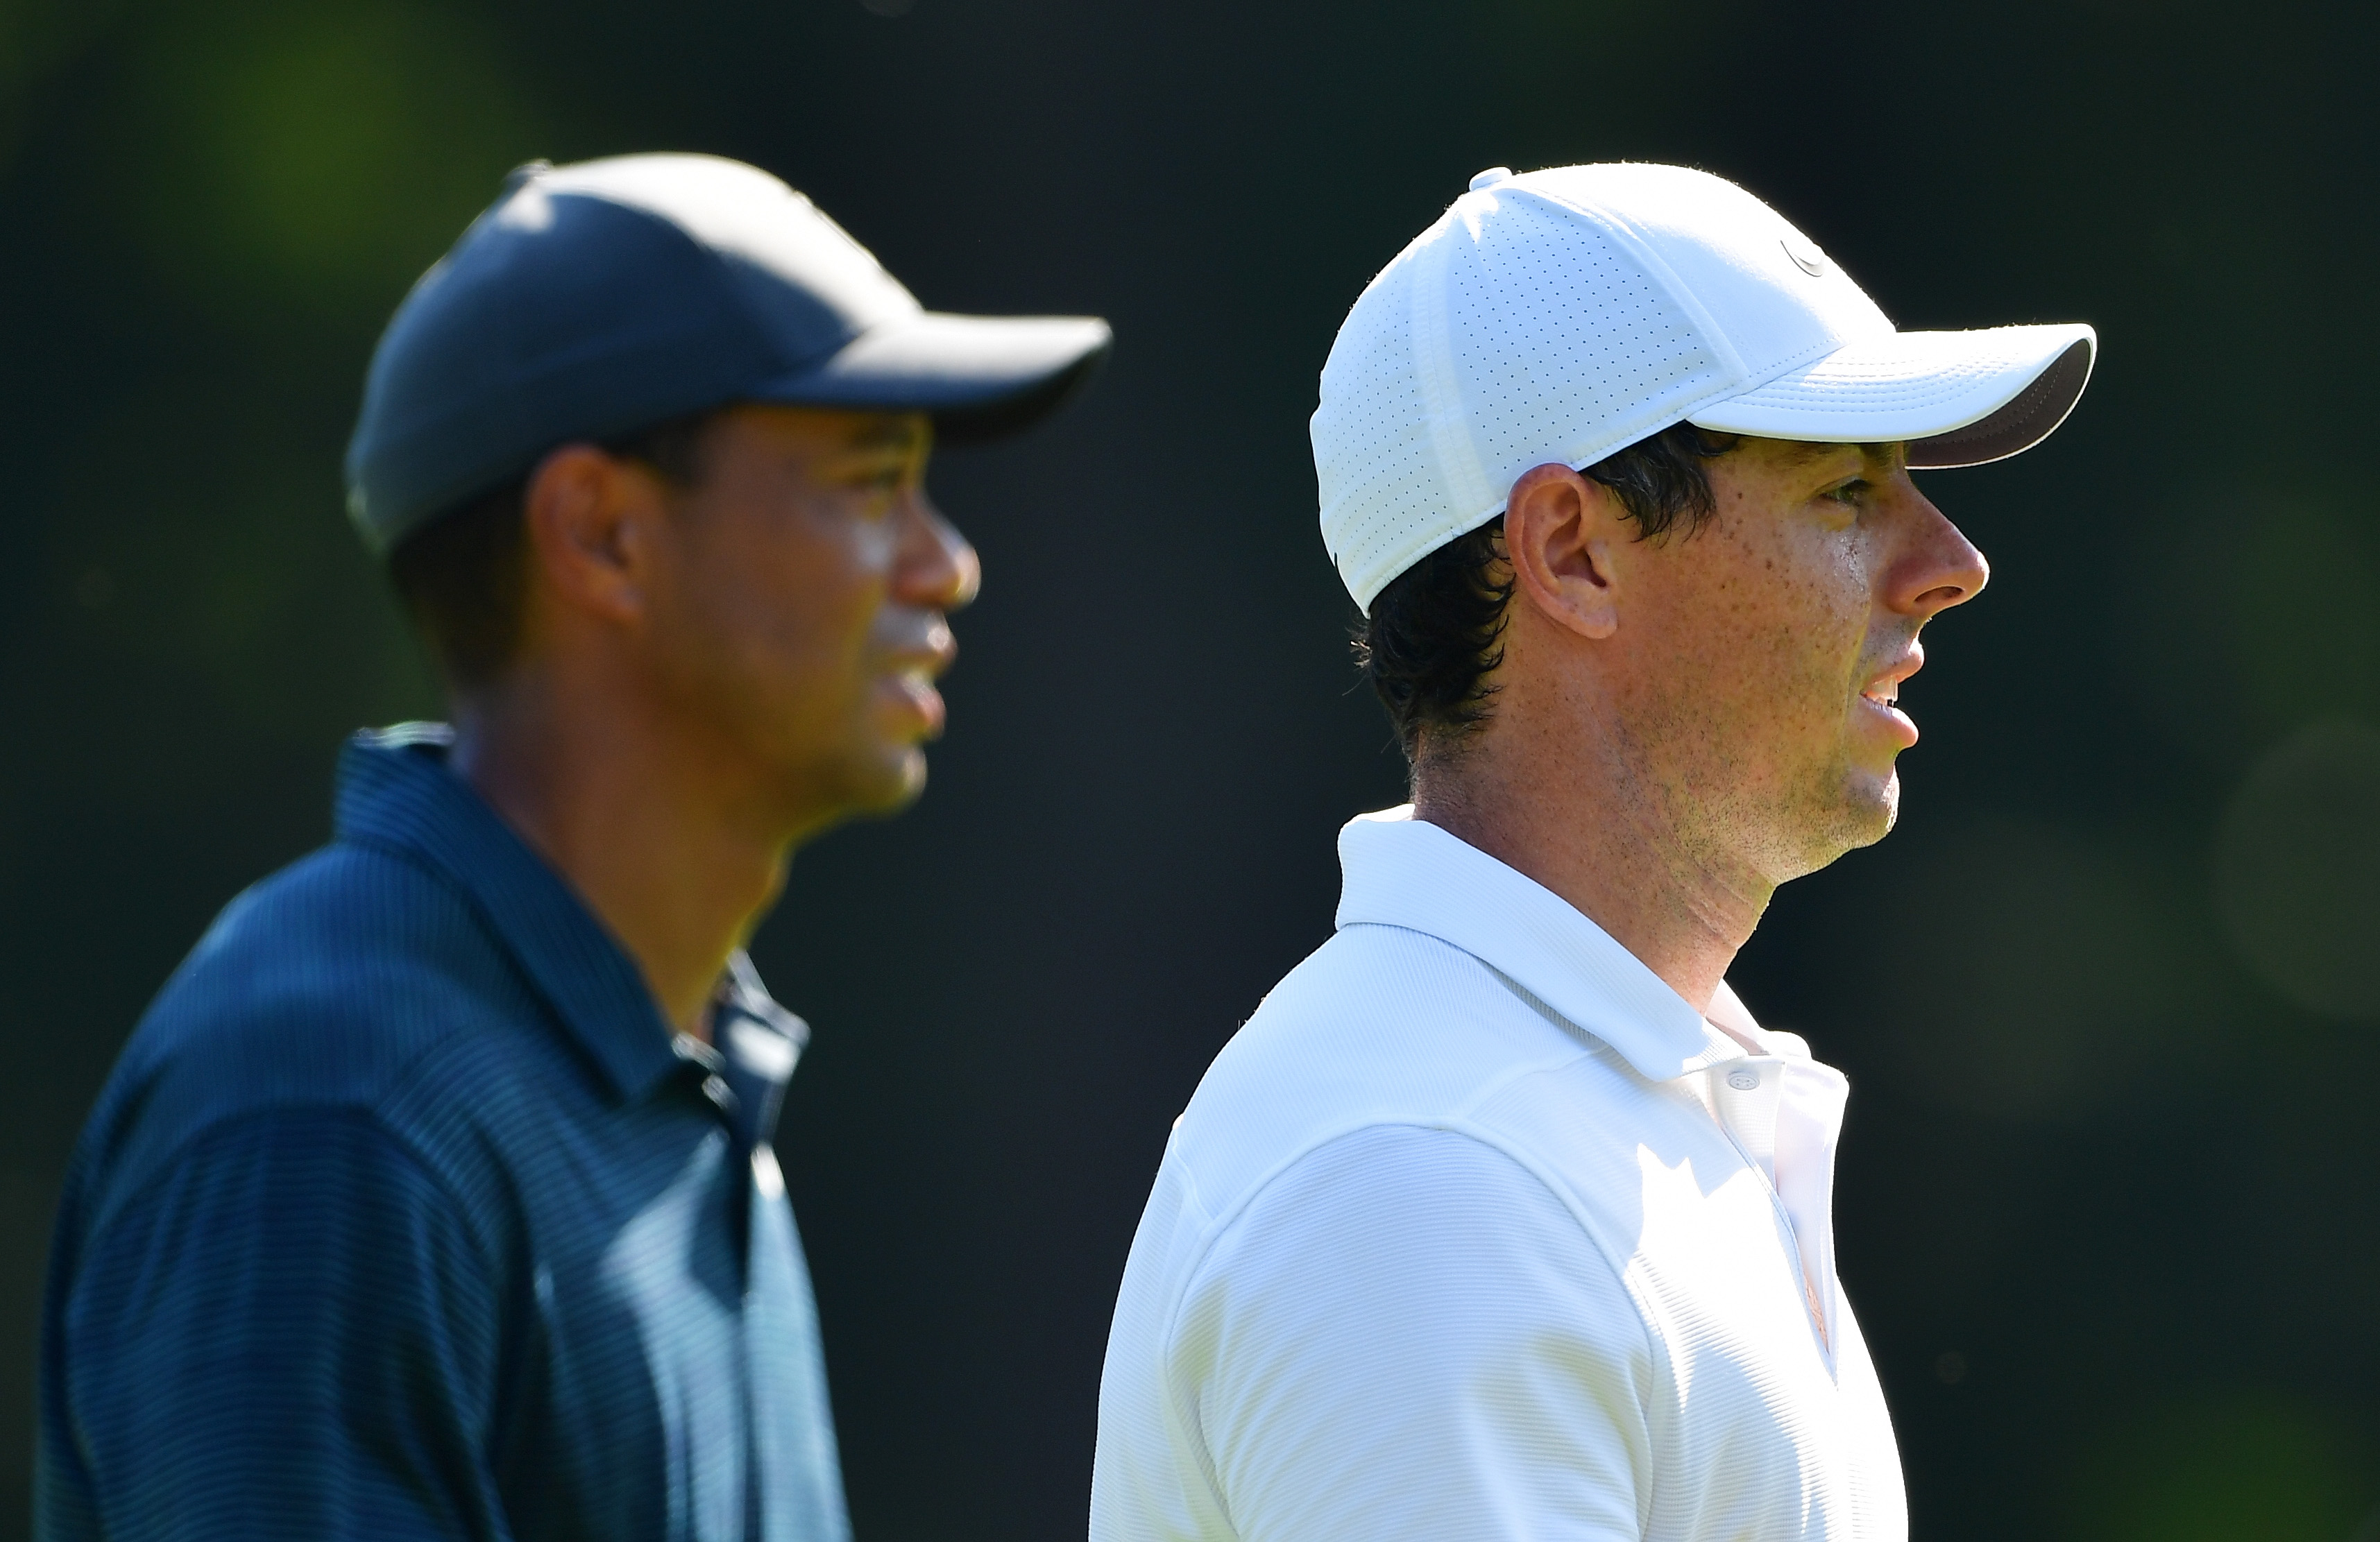 Rory McIlroy Gained Valuable Insight From Tiger Woods' Trophy Case Ahead of the Masters